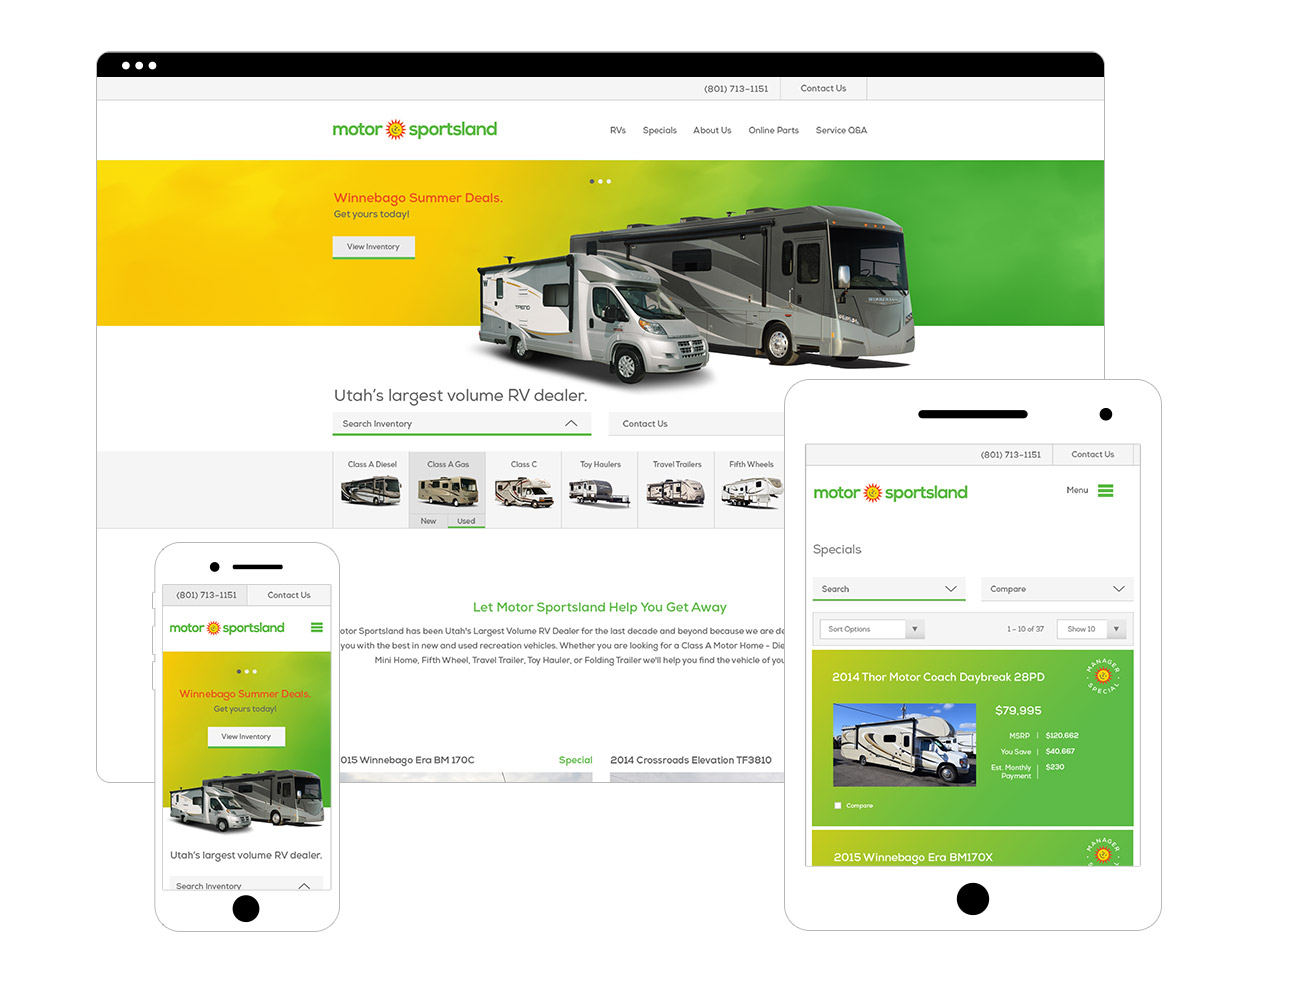 Motor Sportsland E-Commerce Responsive Website Design By Alexander Hofstetter